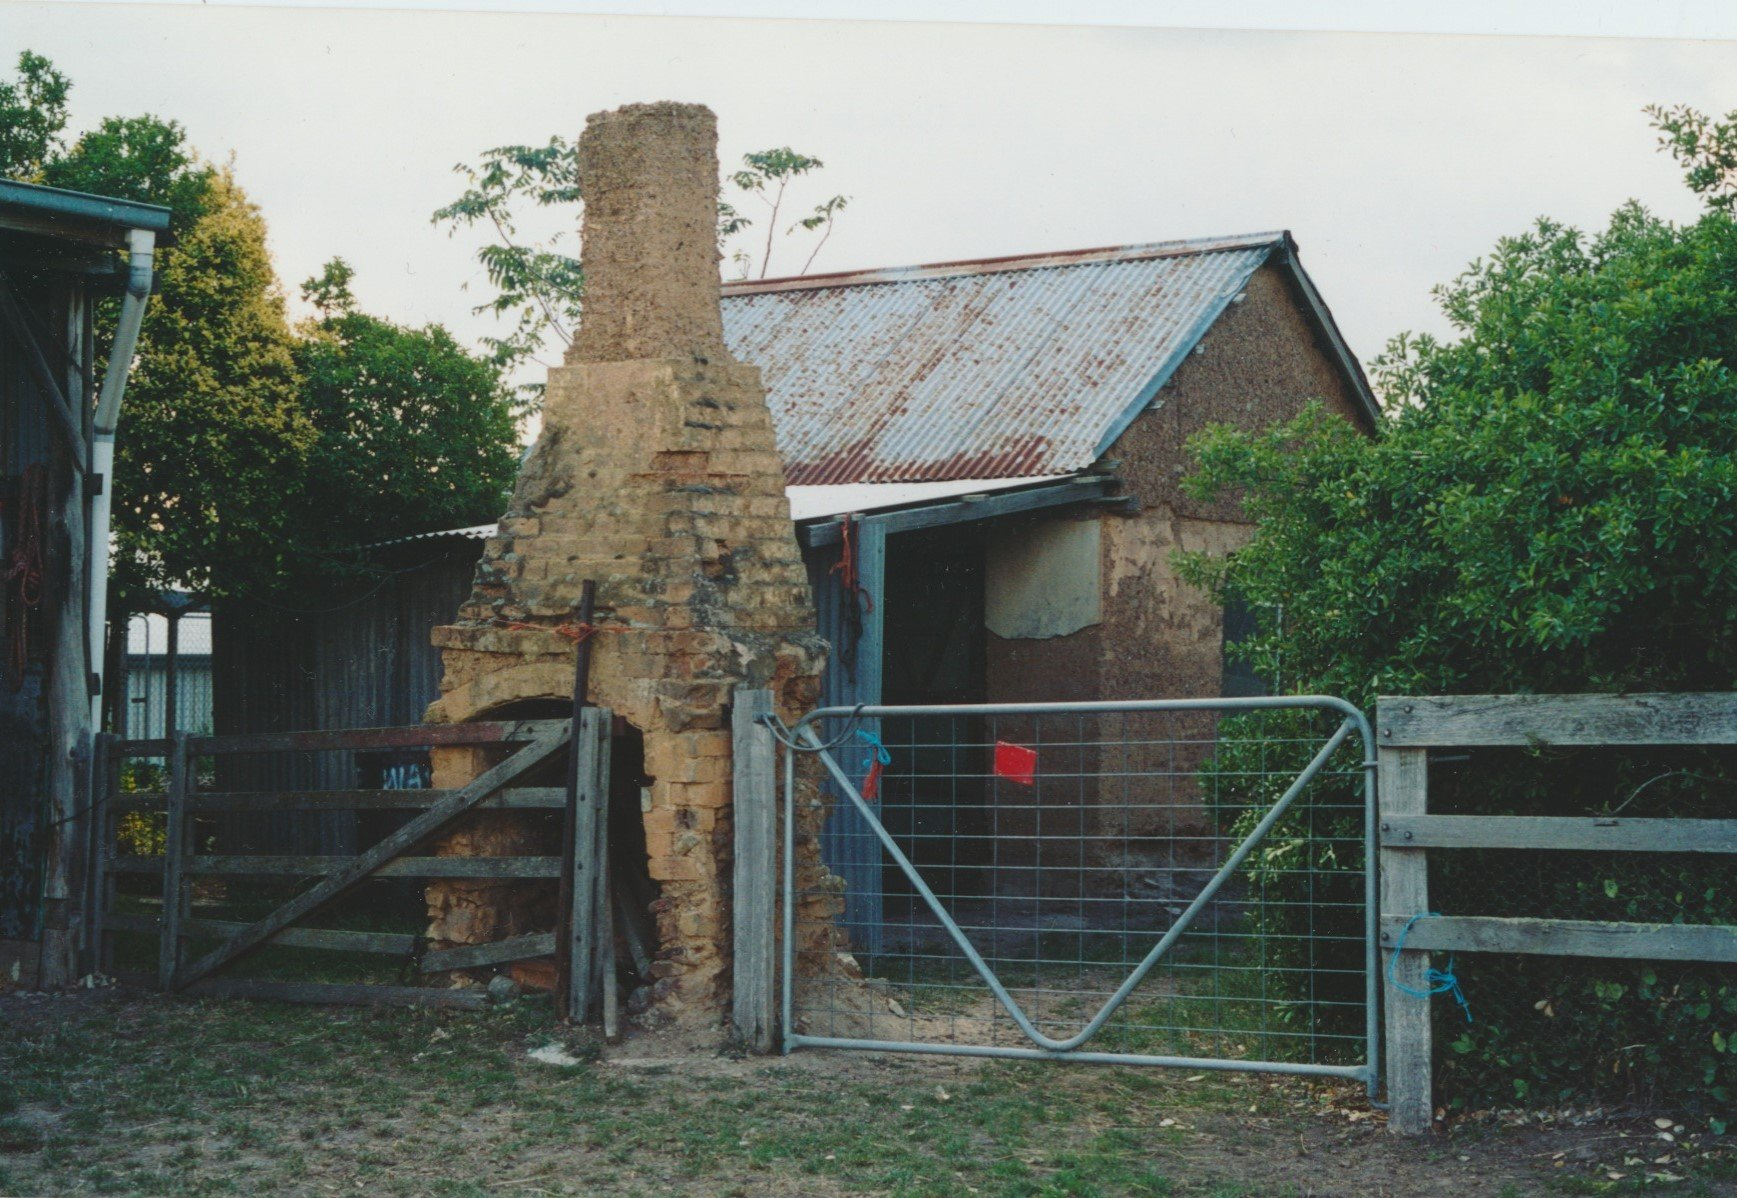 Chimney and detached kitchen of old Healey house, last occupied by Alexander 'Alec' Healey, son of James Healey.  Bruce G. Draper, 2003